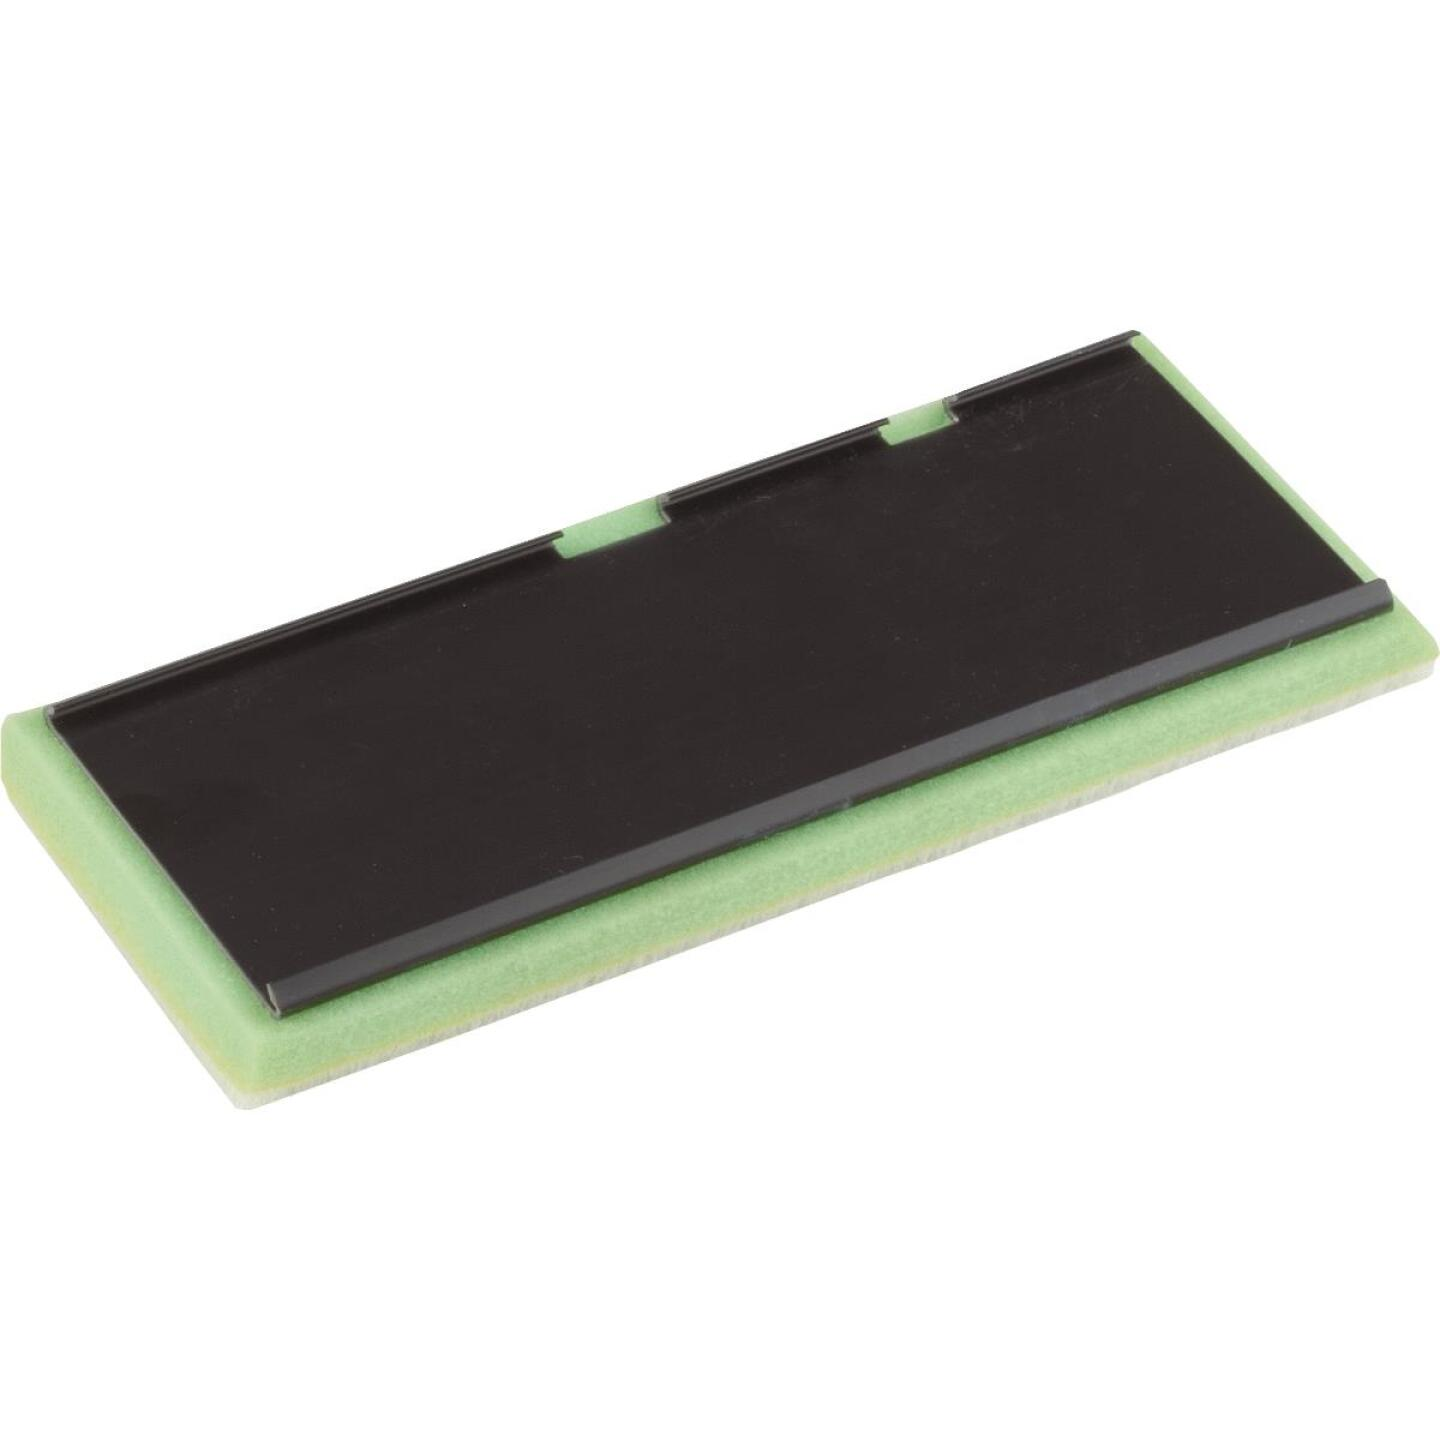 Shur-Line 9 In. Walls & Floors Paint Pad Refill Image 2